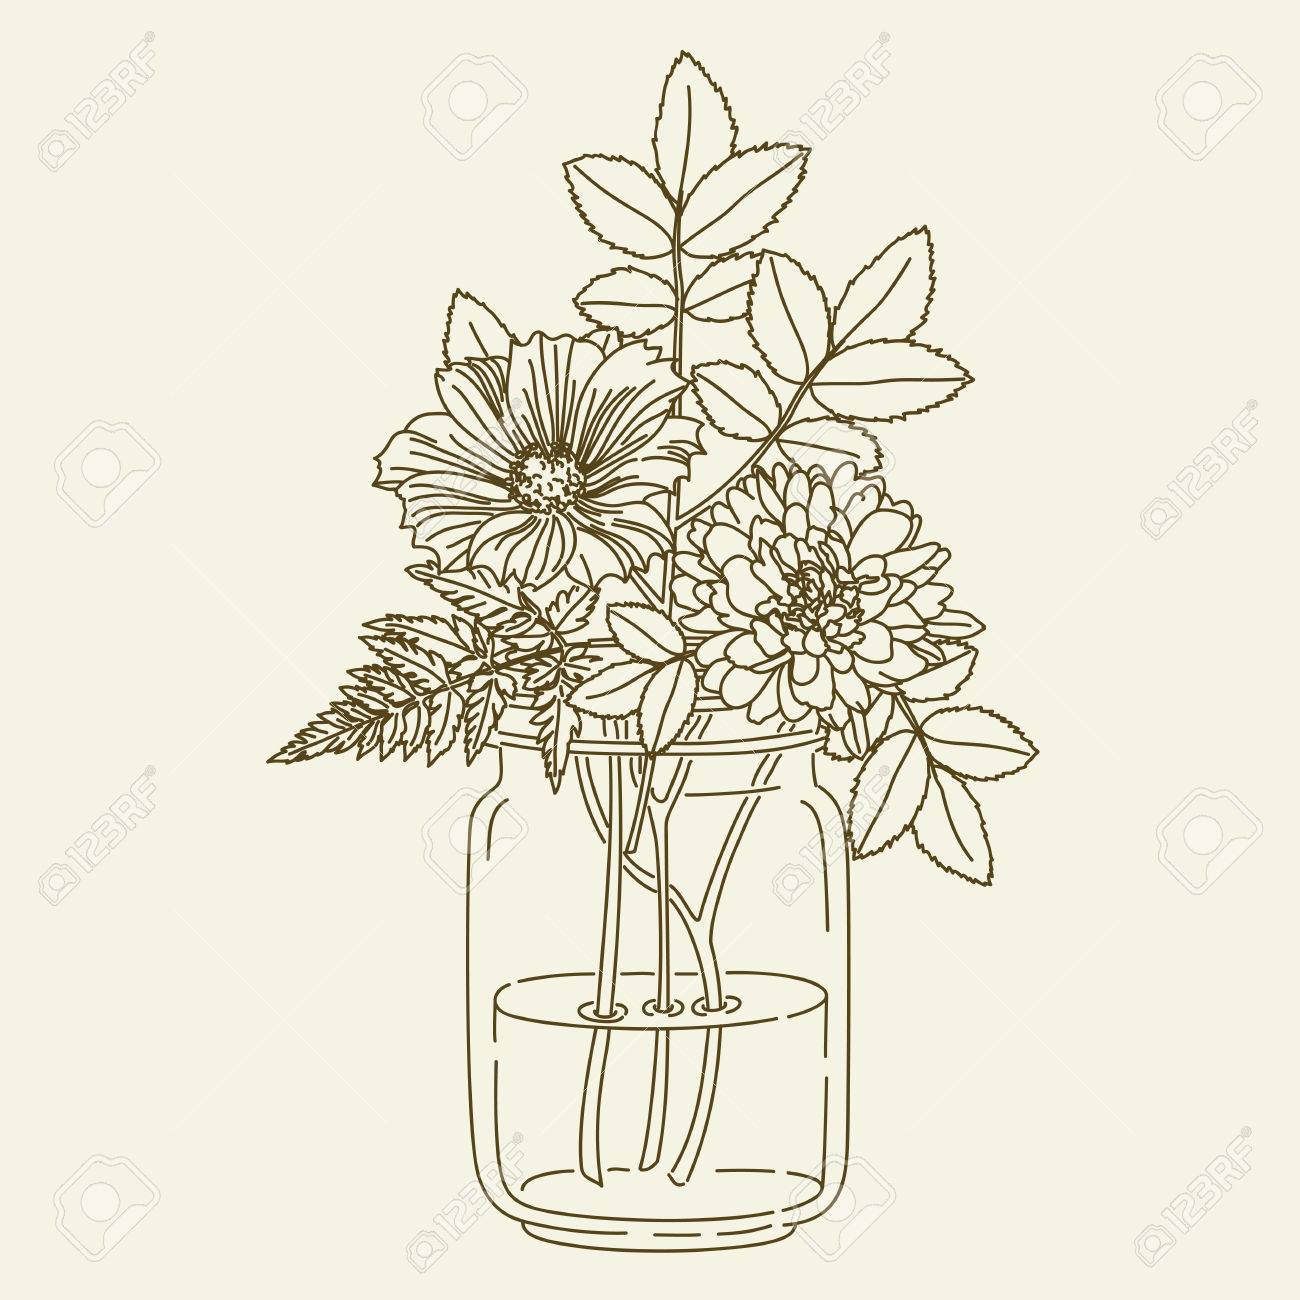 Hand Drawn Flowers In Mason Jar Illustration Coloring Page Stock Vector